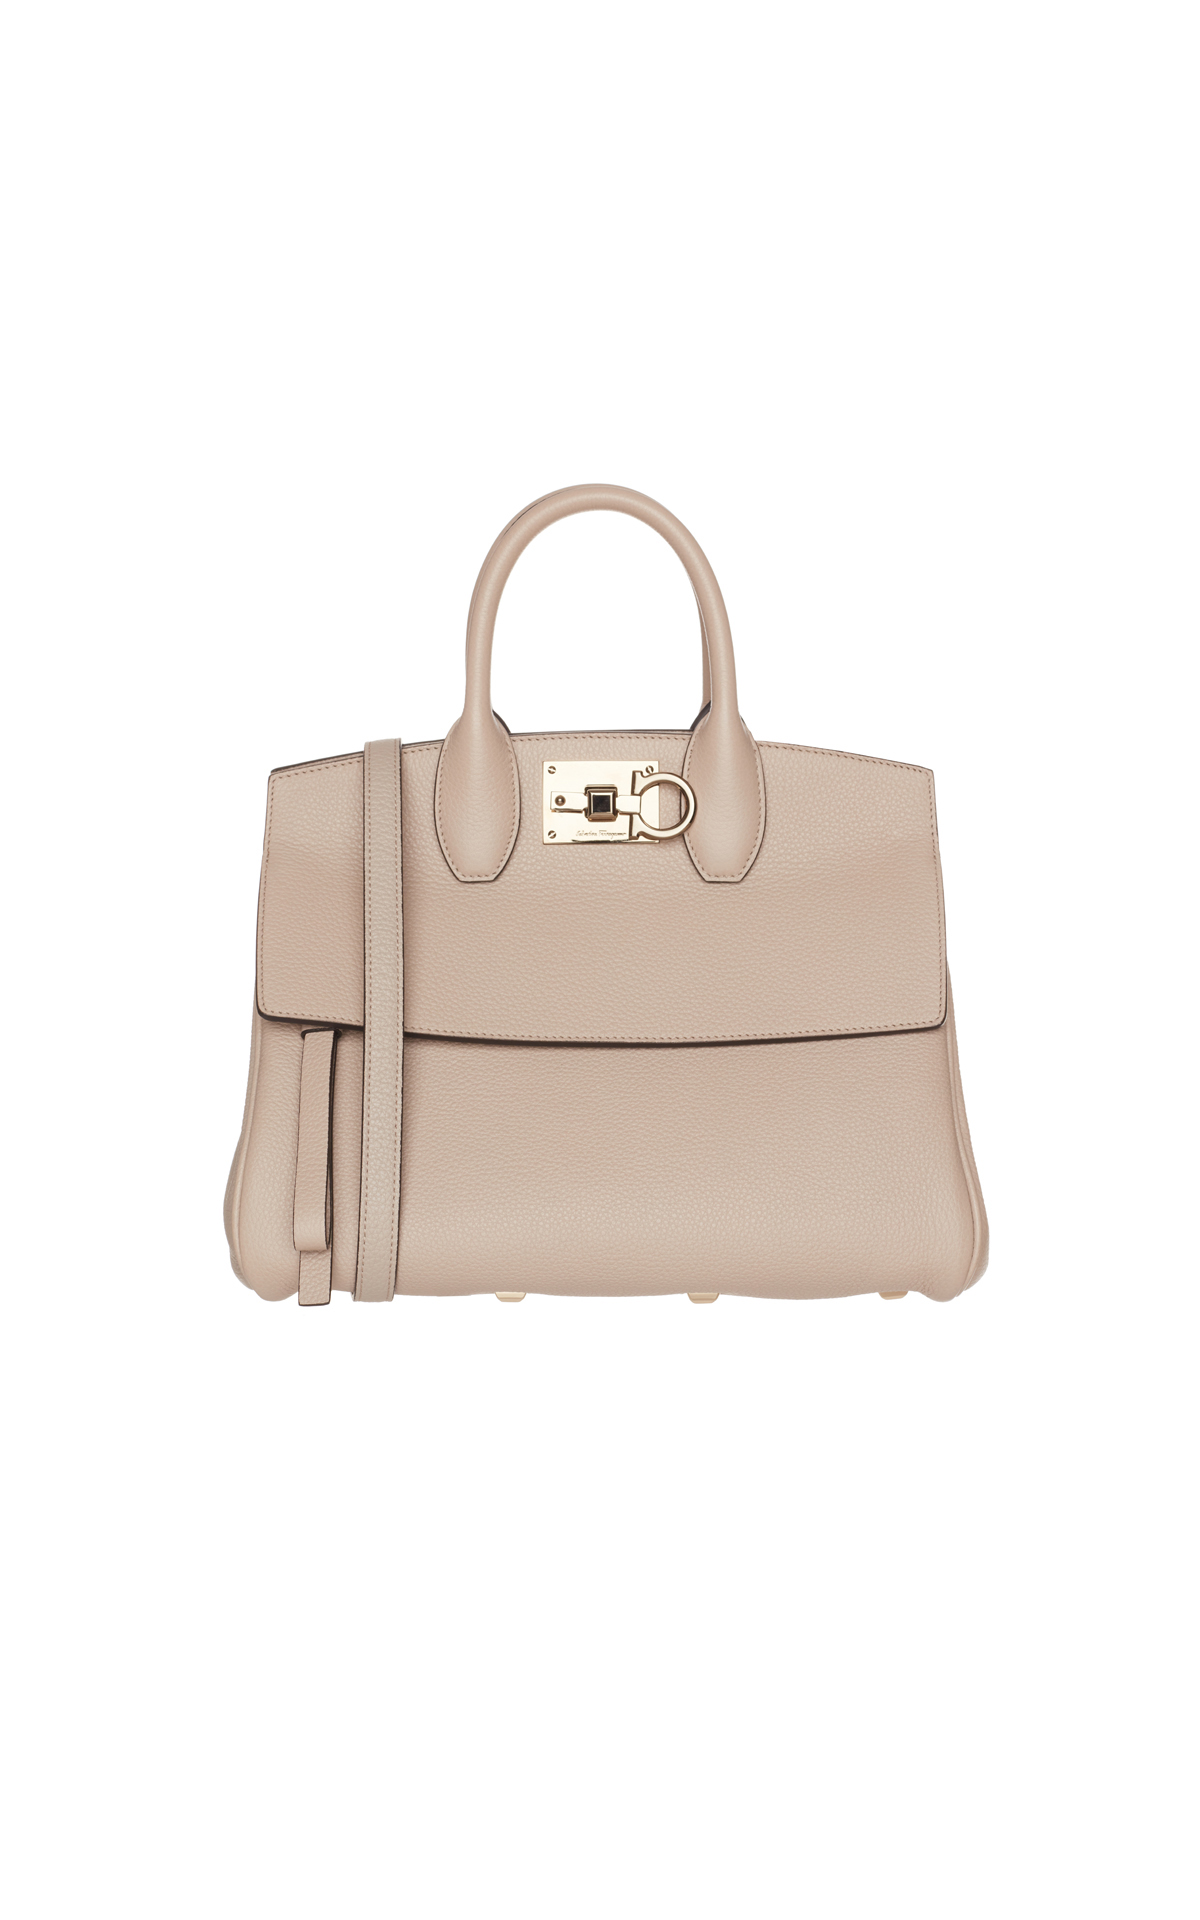 Salvatore Ferragamo White top handle bag from Bicester Village